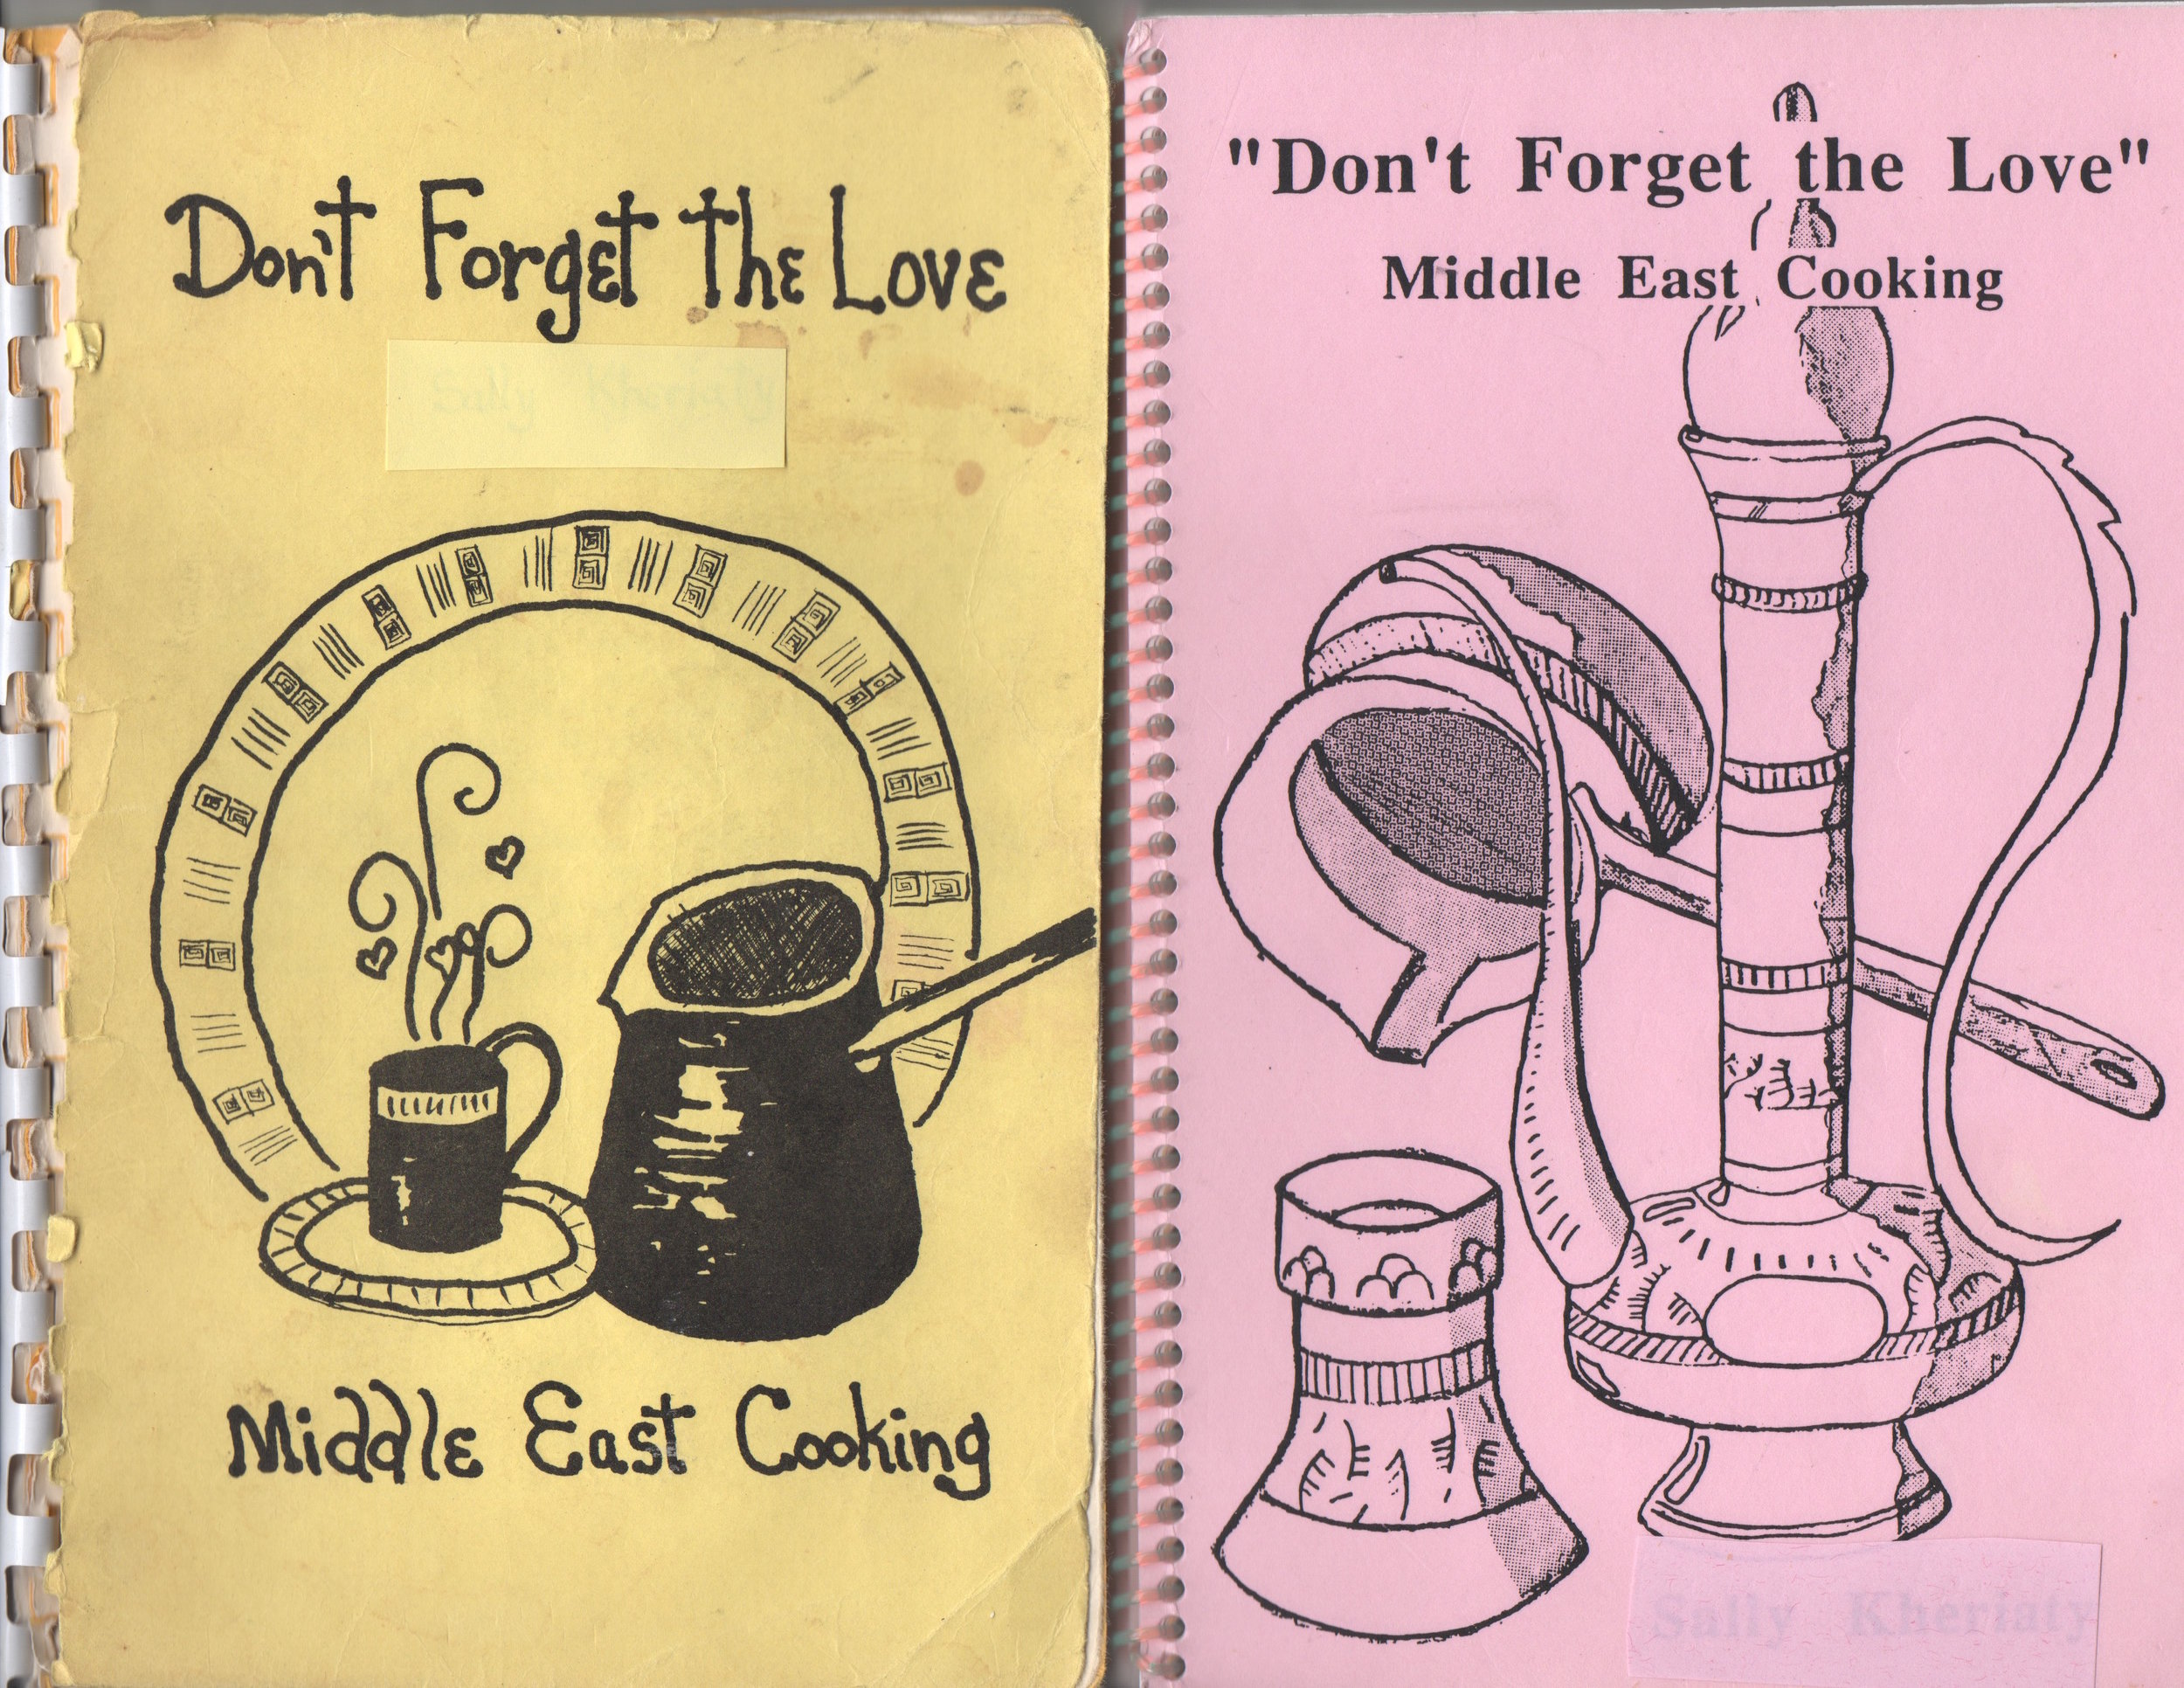 These are the two covers mom used. The yellow one was her first edition. The pink one was an improved version. My copies are well used.